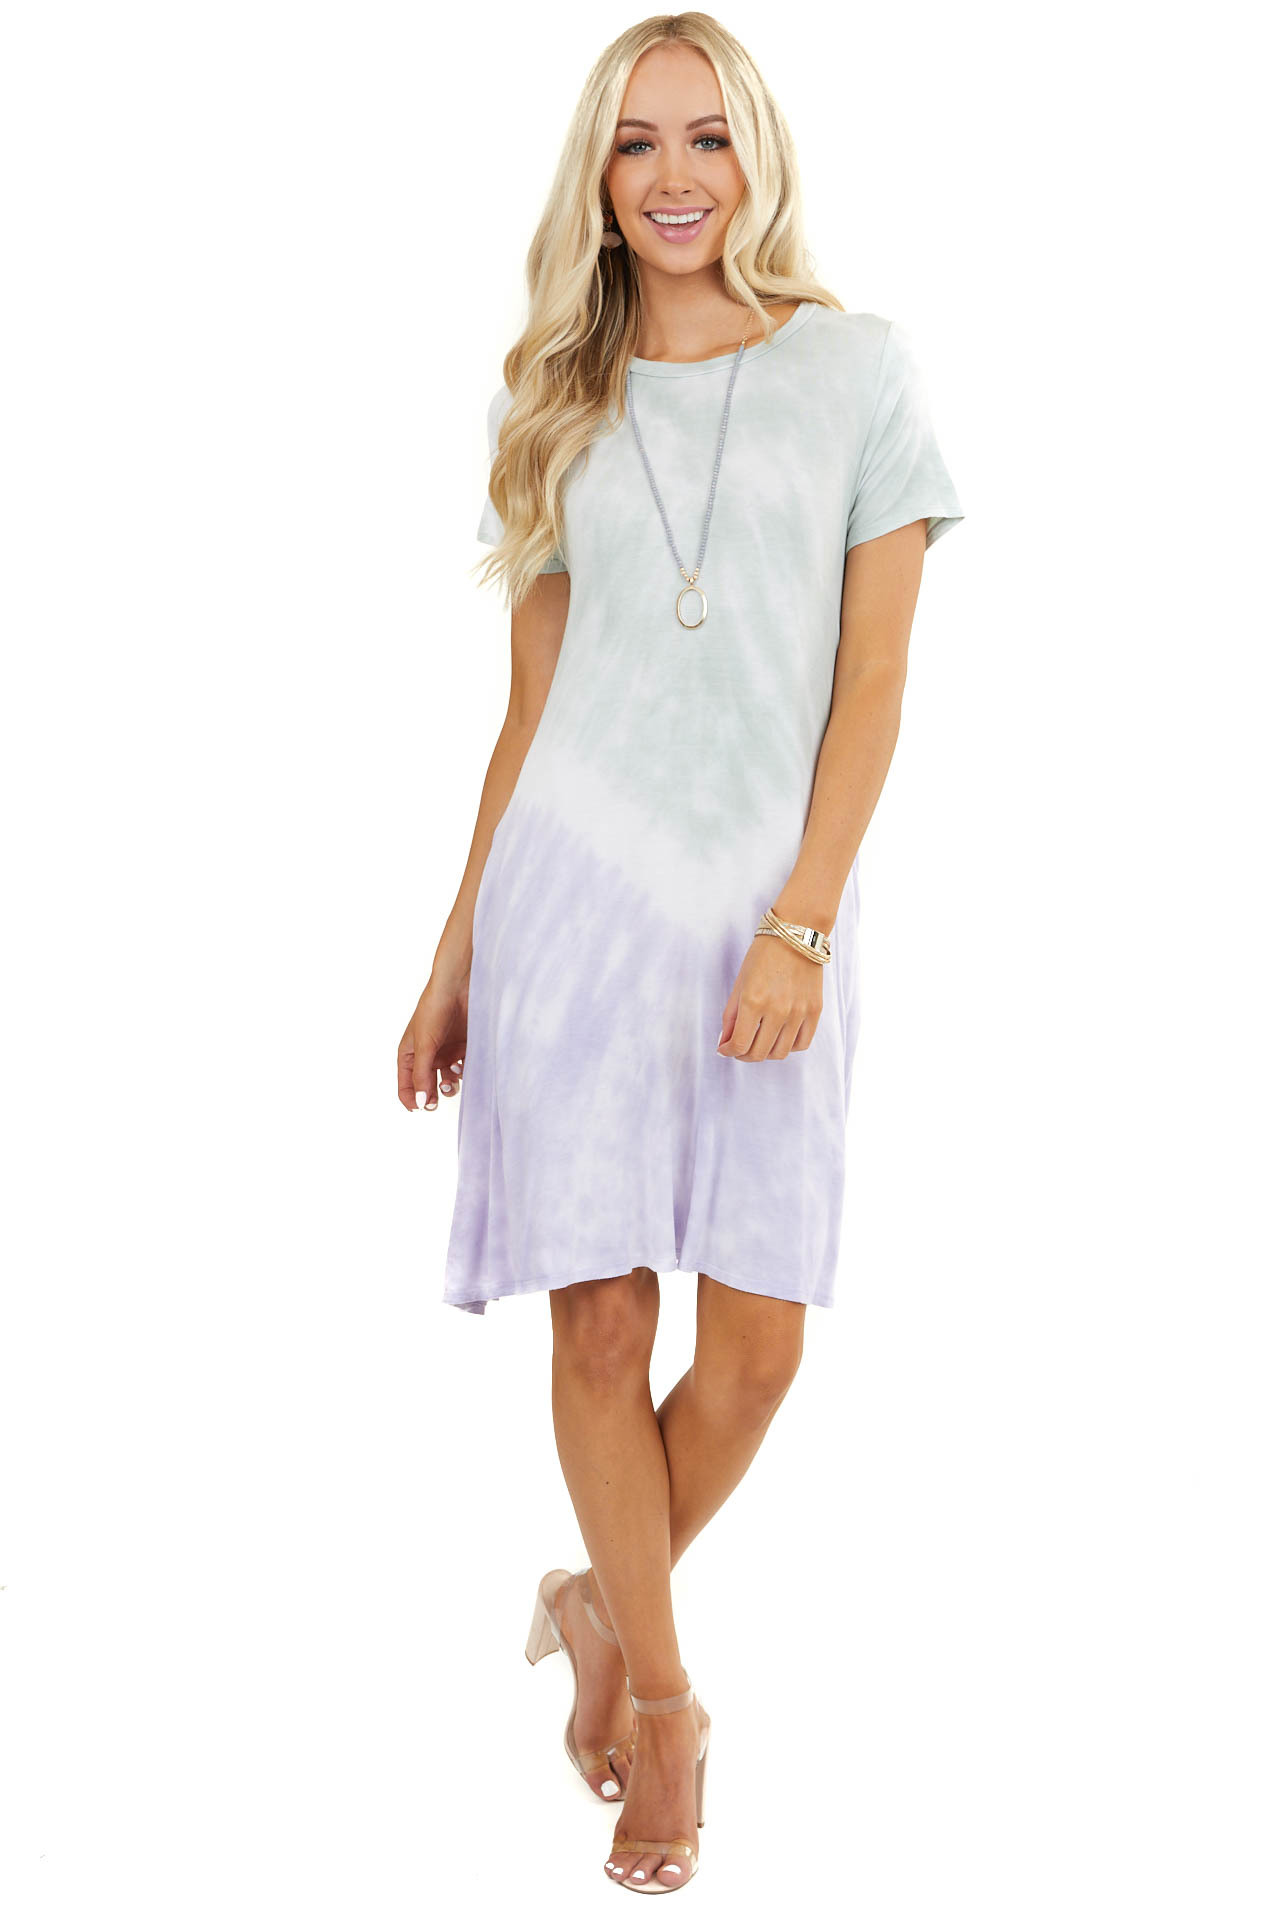 Pale Violet and Seafoam Tie Dye Short Dress with Pockets